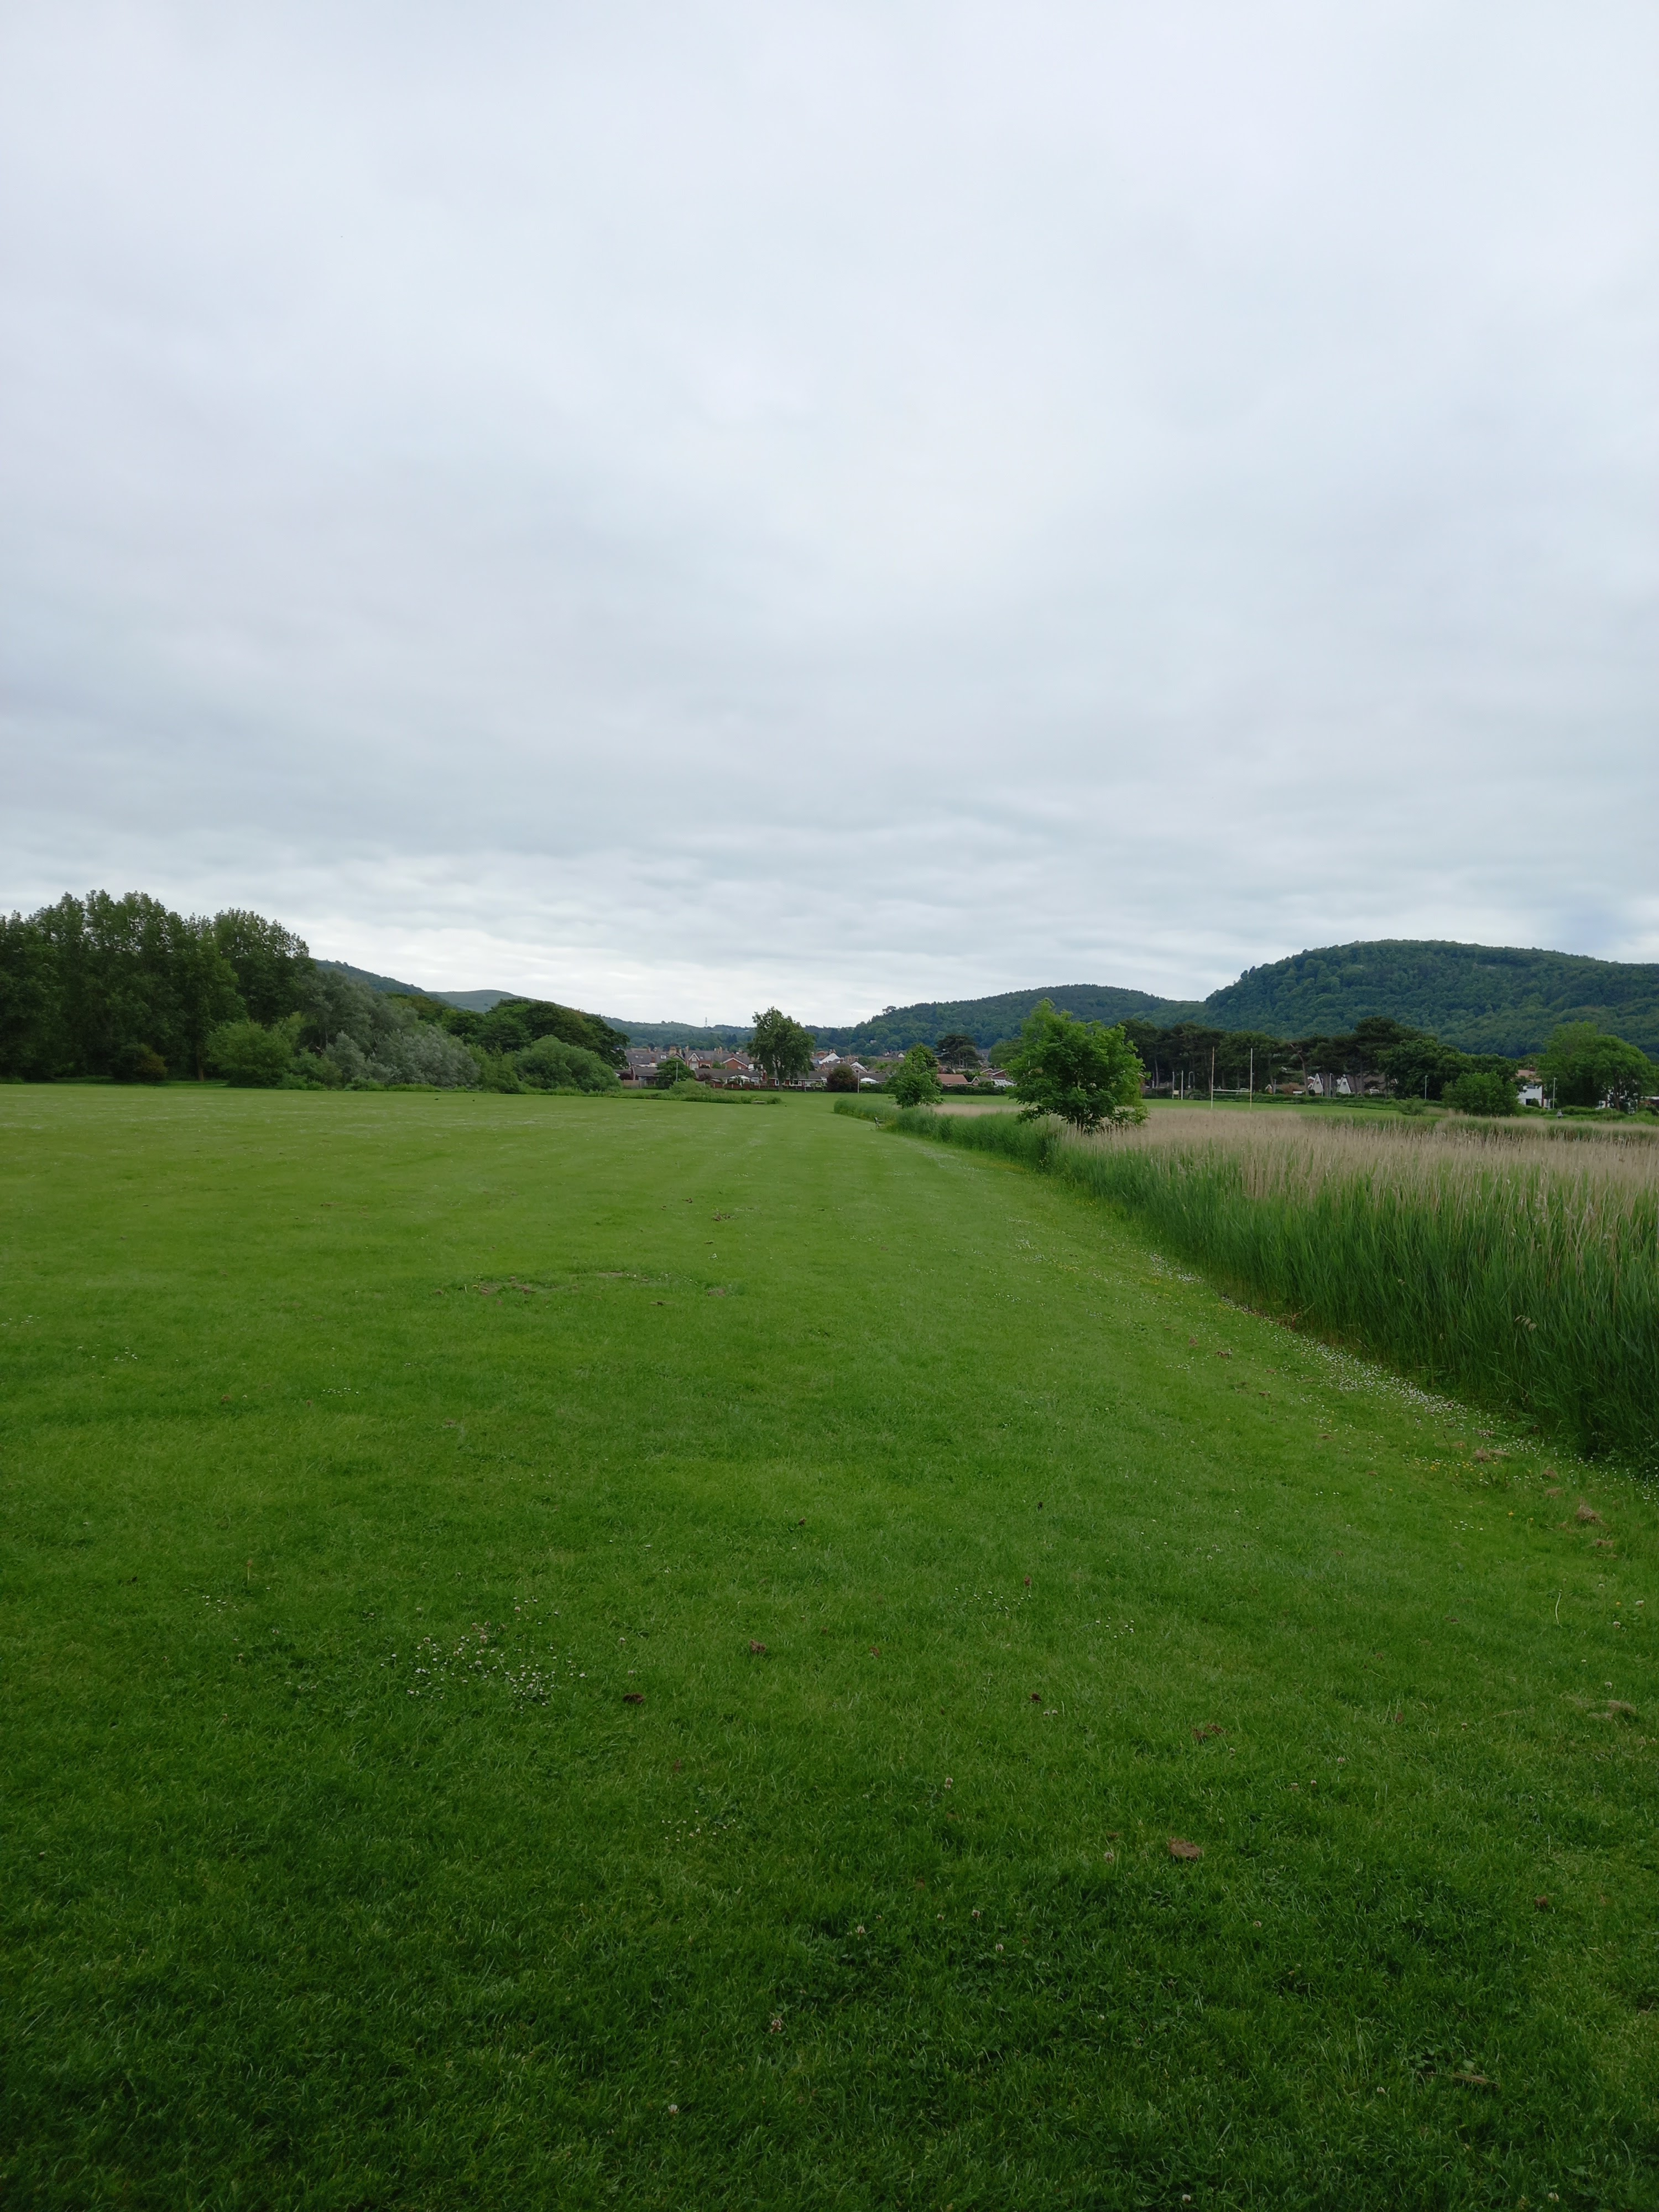 A view of Pentre Mawr park looking towards the Gopa taken by Diane Woodrow